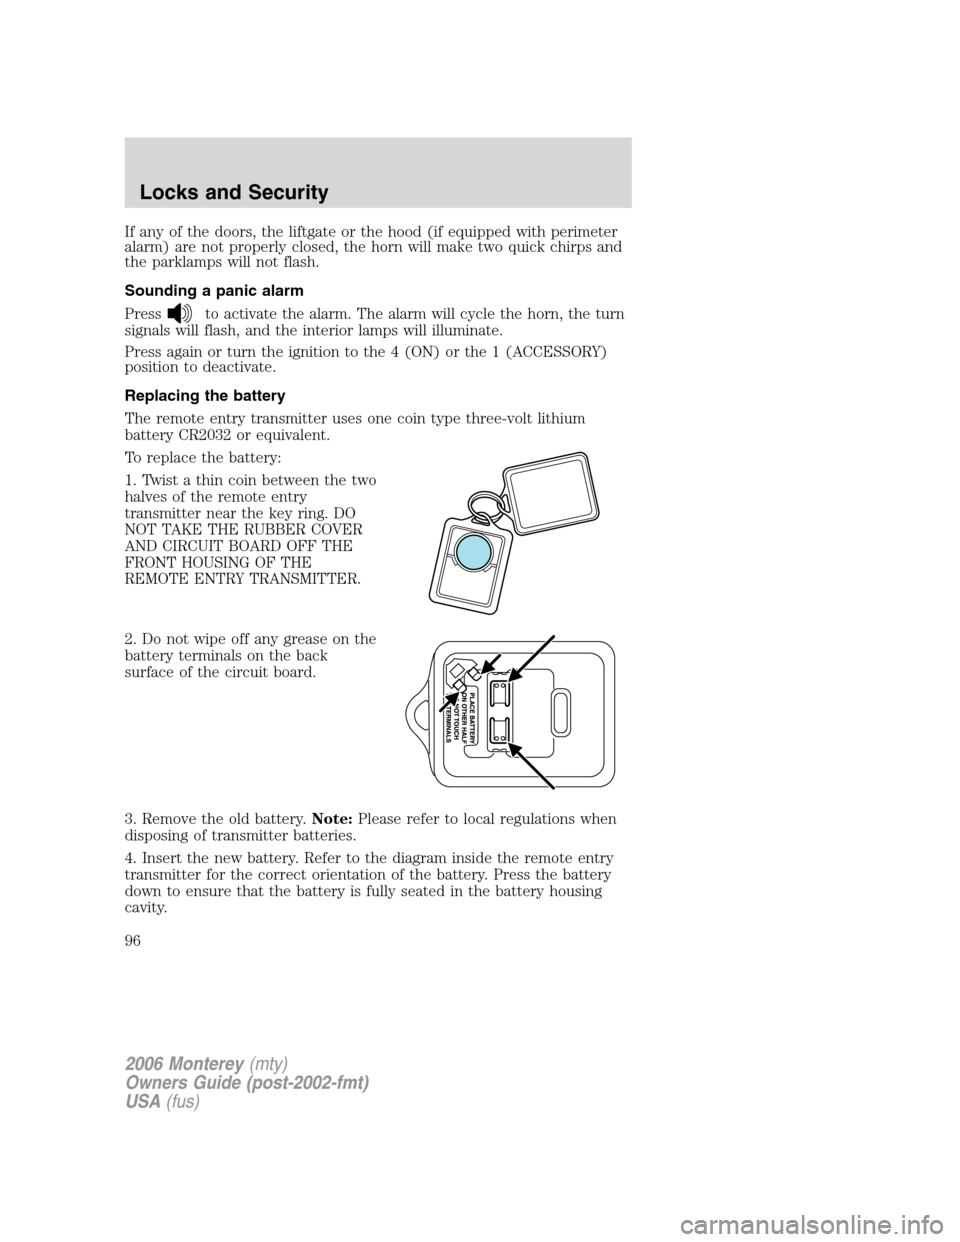 Mercury Monterey 2006  Owners Manuals If any of the doors, the liftgate or the hood (if equipped with perimeter alarm) are not properly closed, the horn will make two quick chirps and the parklamps will not flash. Sounding a panic alarm P